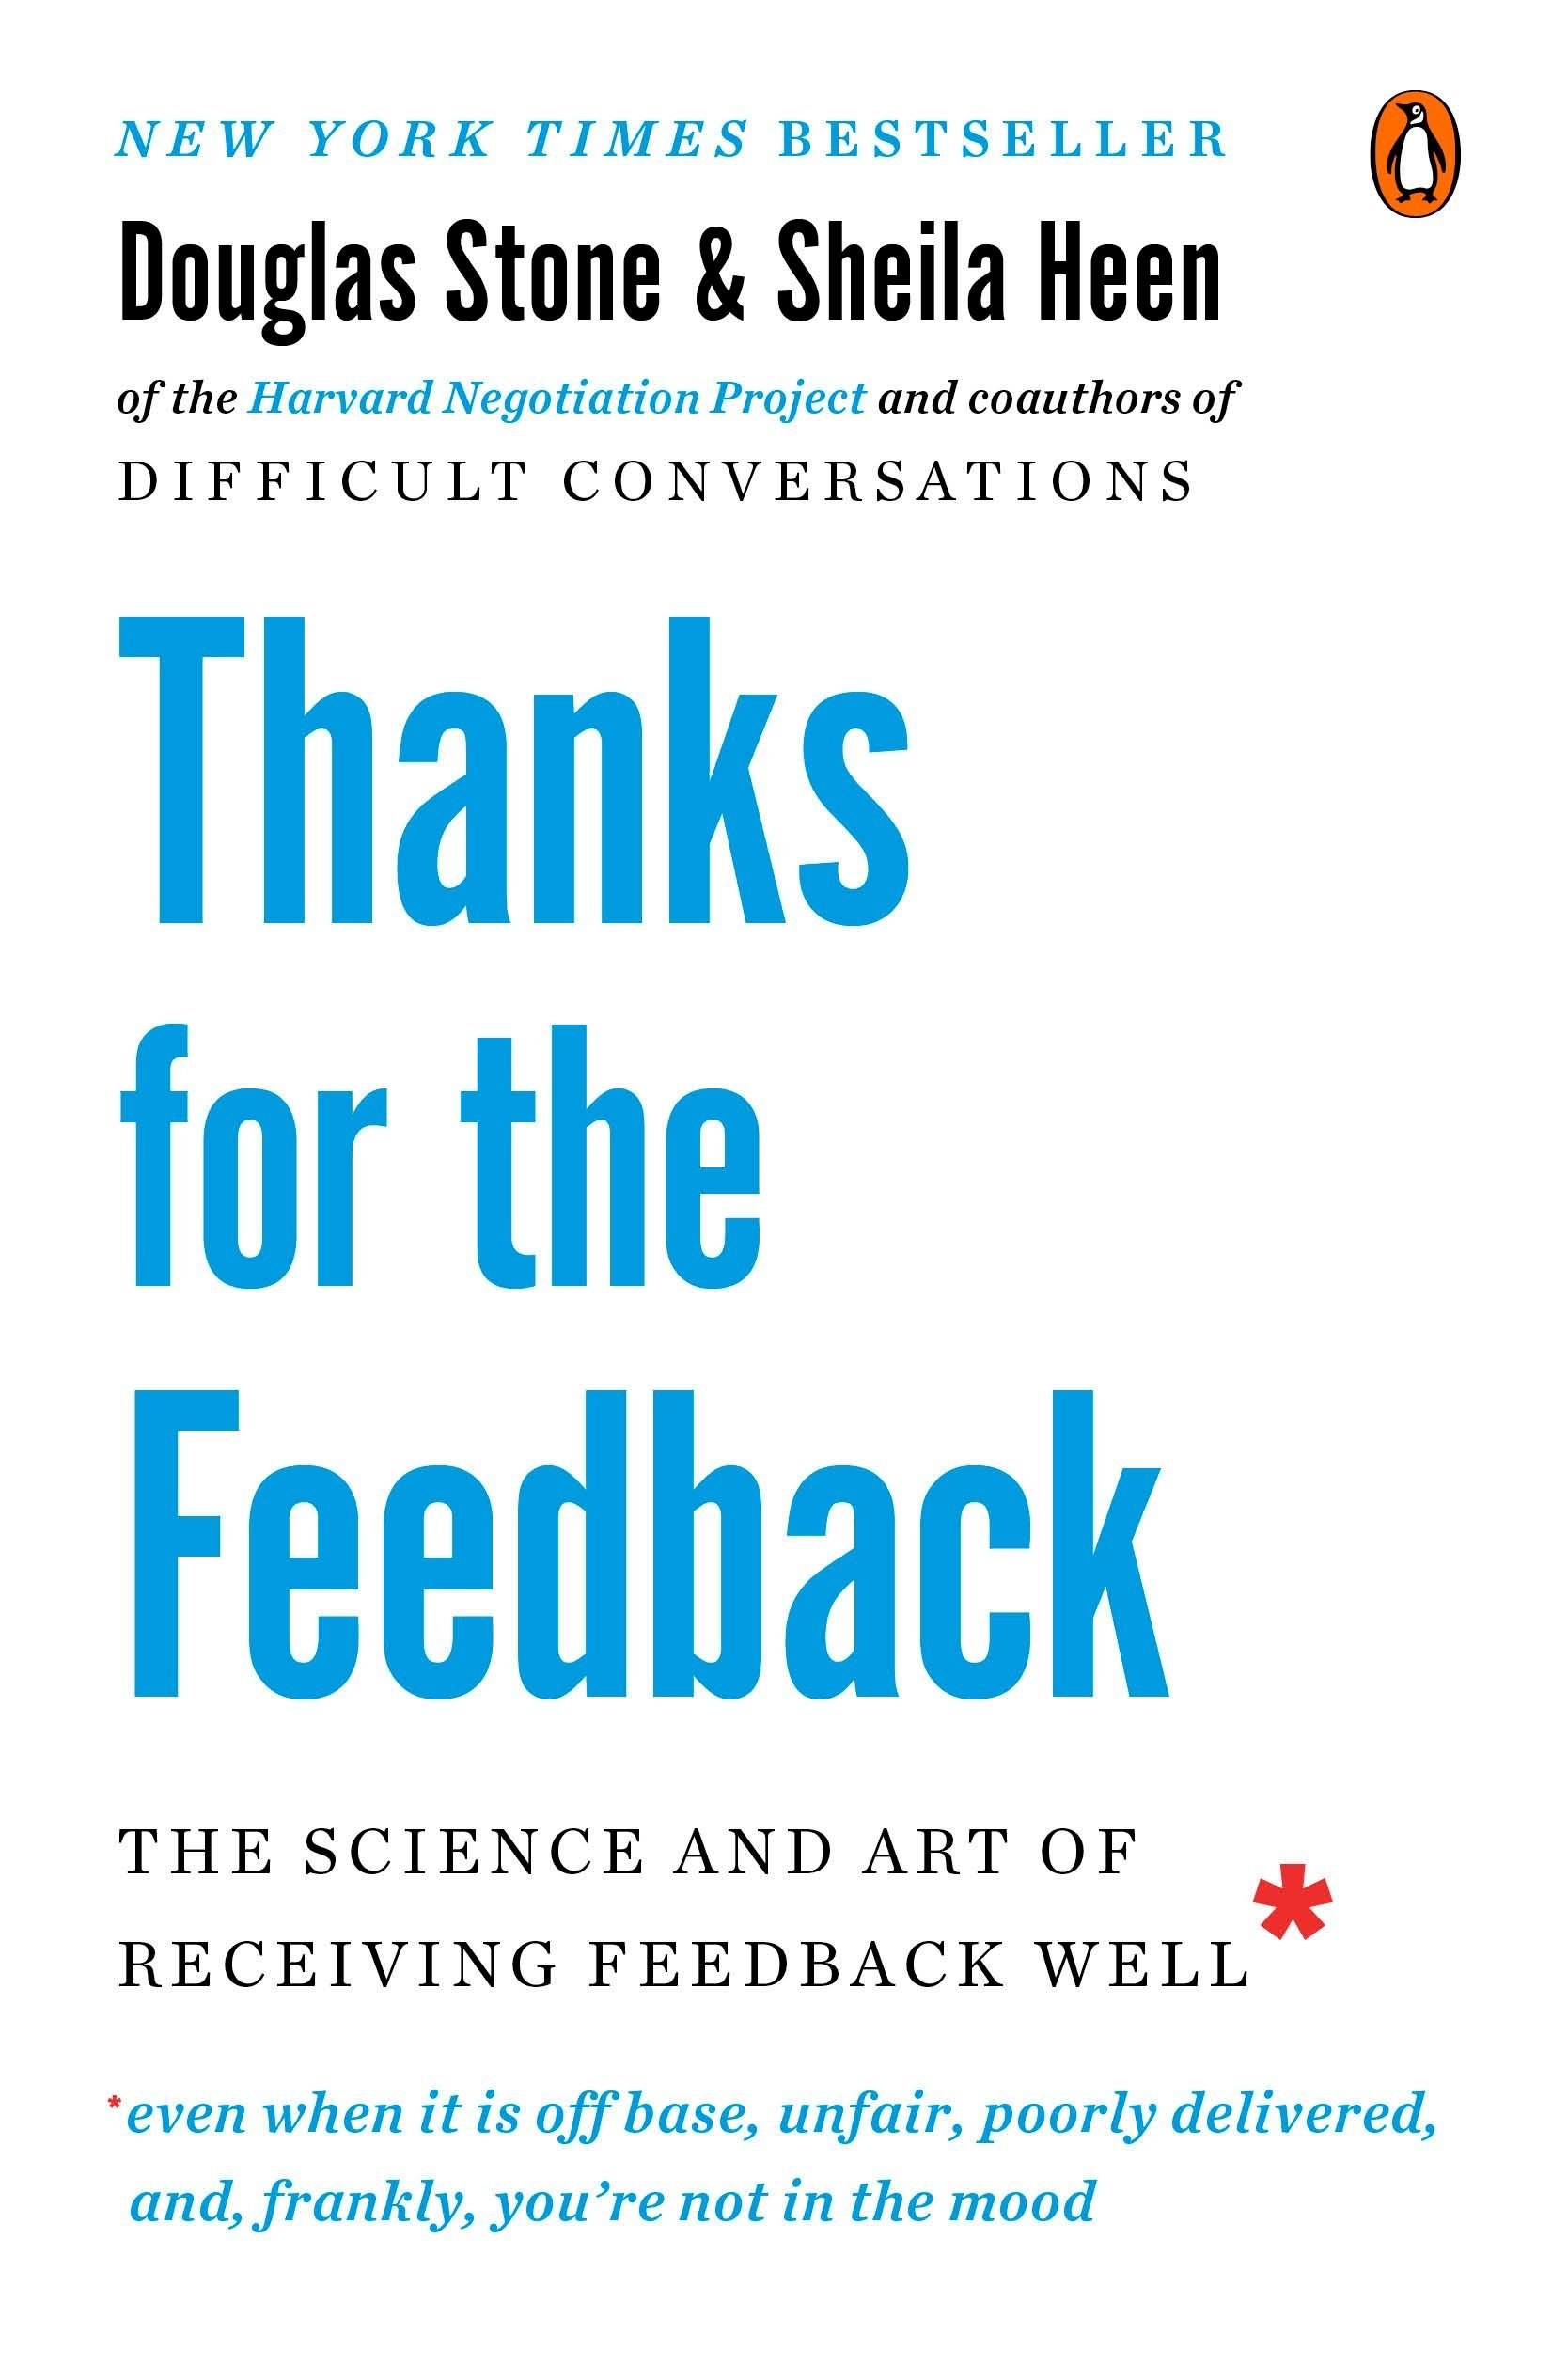 Thanks for the Feedback: The Science and Art of Receiving Feedback Well - Feedback is critical in order to grow and succeed in both your professional and personal life. This book's thesis is that a productive feedback exchange is primarily on the receiver, not the giver. The authors break down the different way feedback can trigger the receiver, and how to better understand, respond to, and act on feedback.